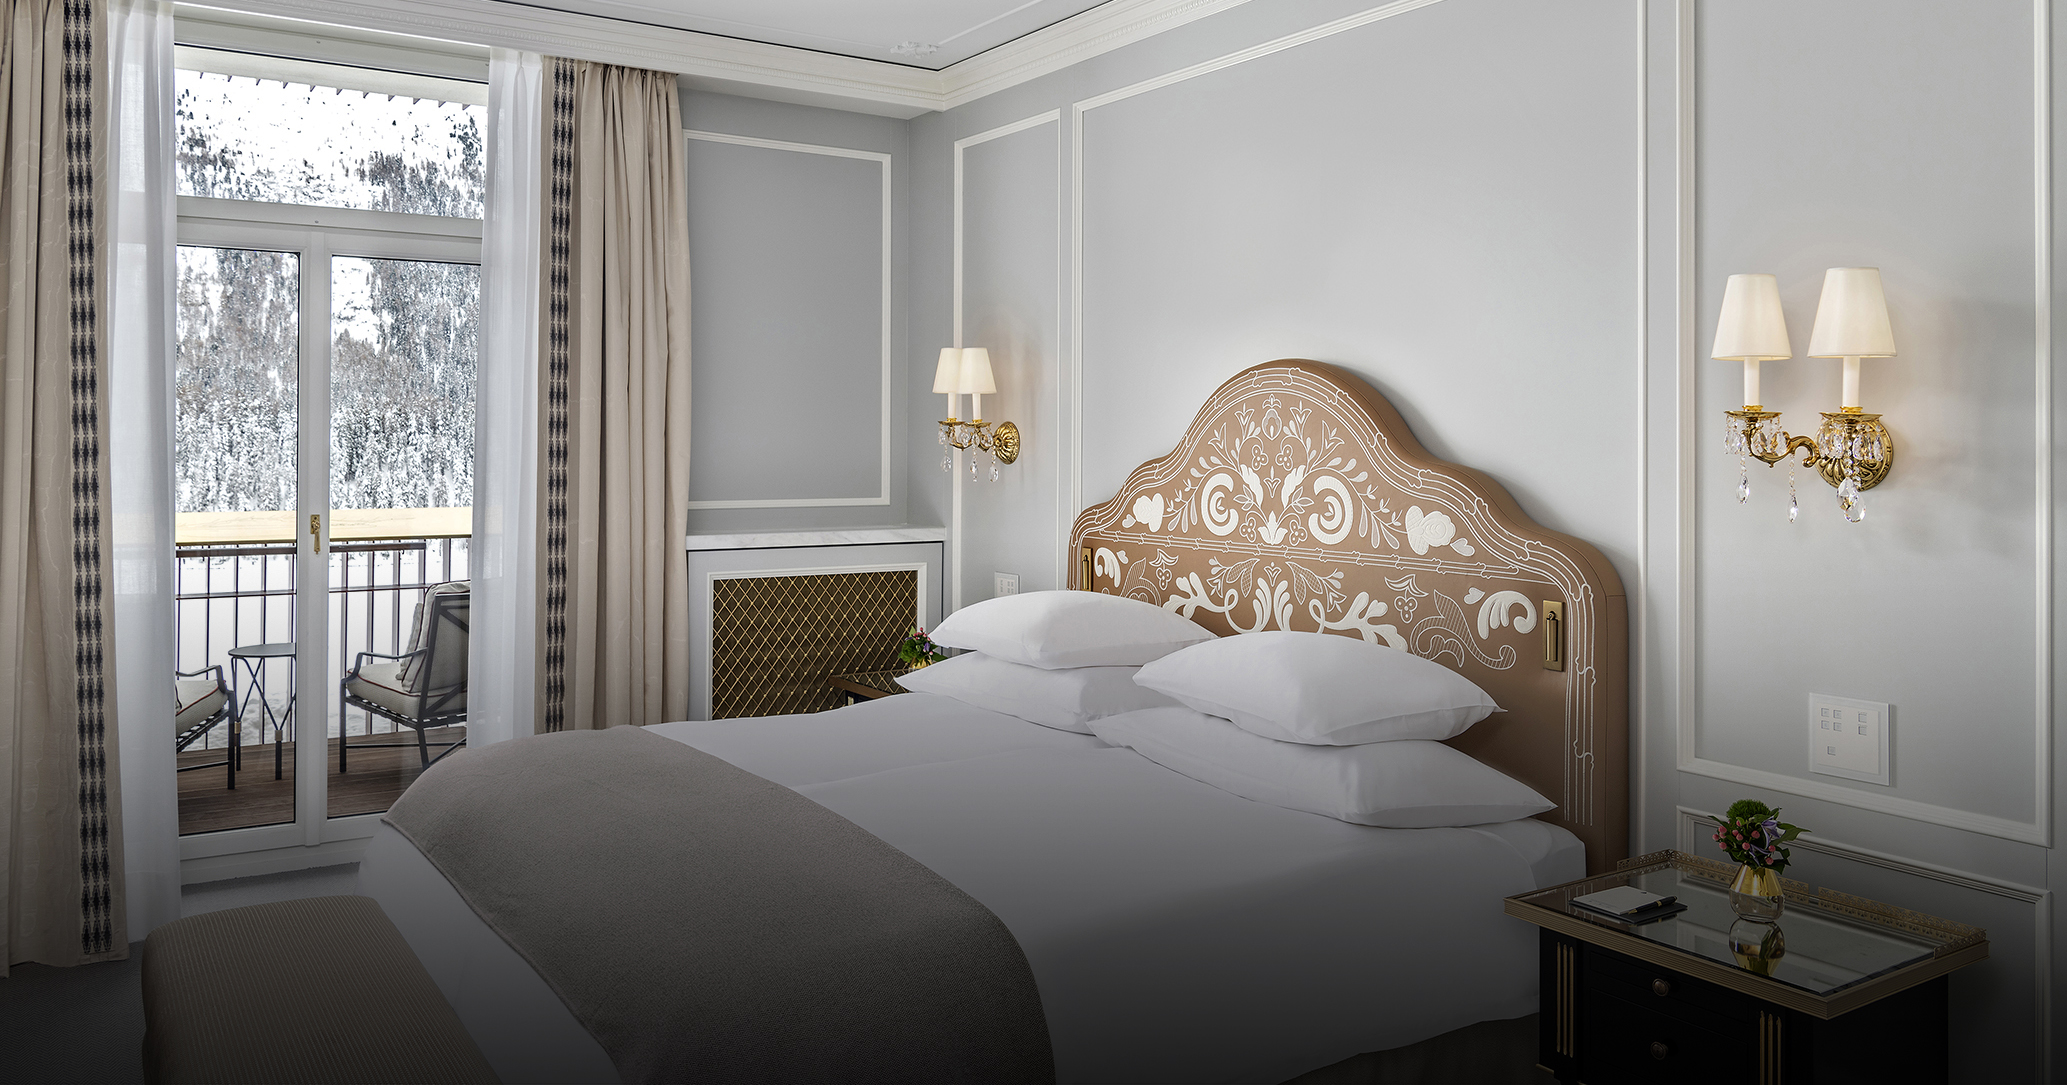 Bedroom suite at the Badrutt's Palace Hotel